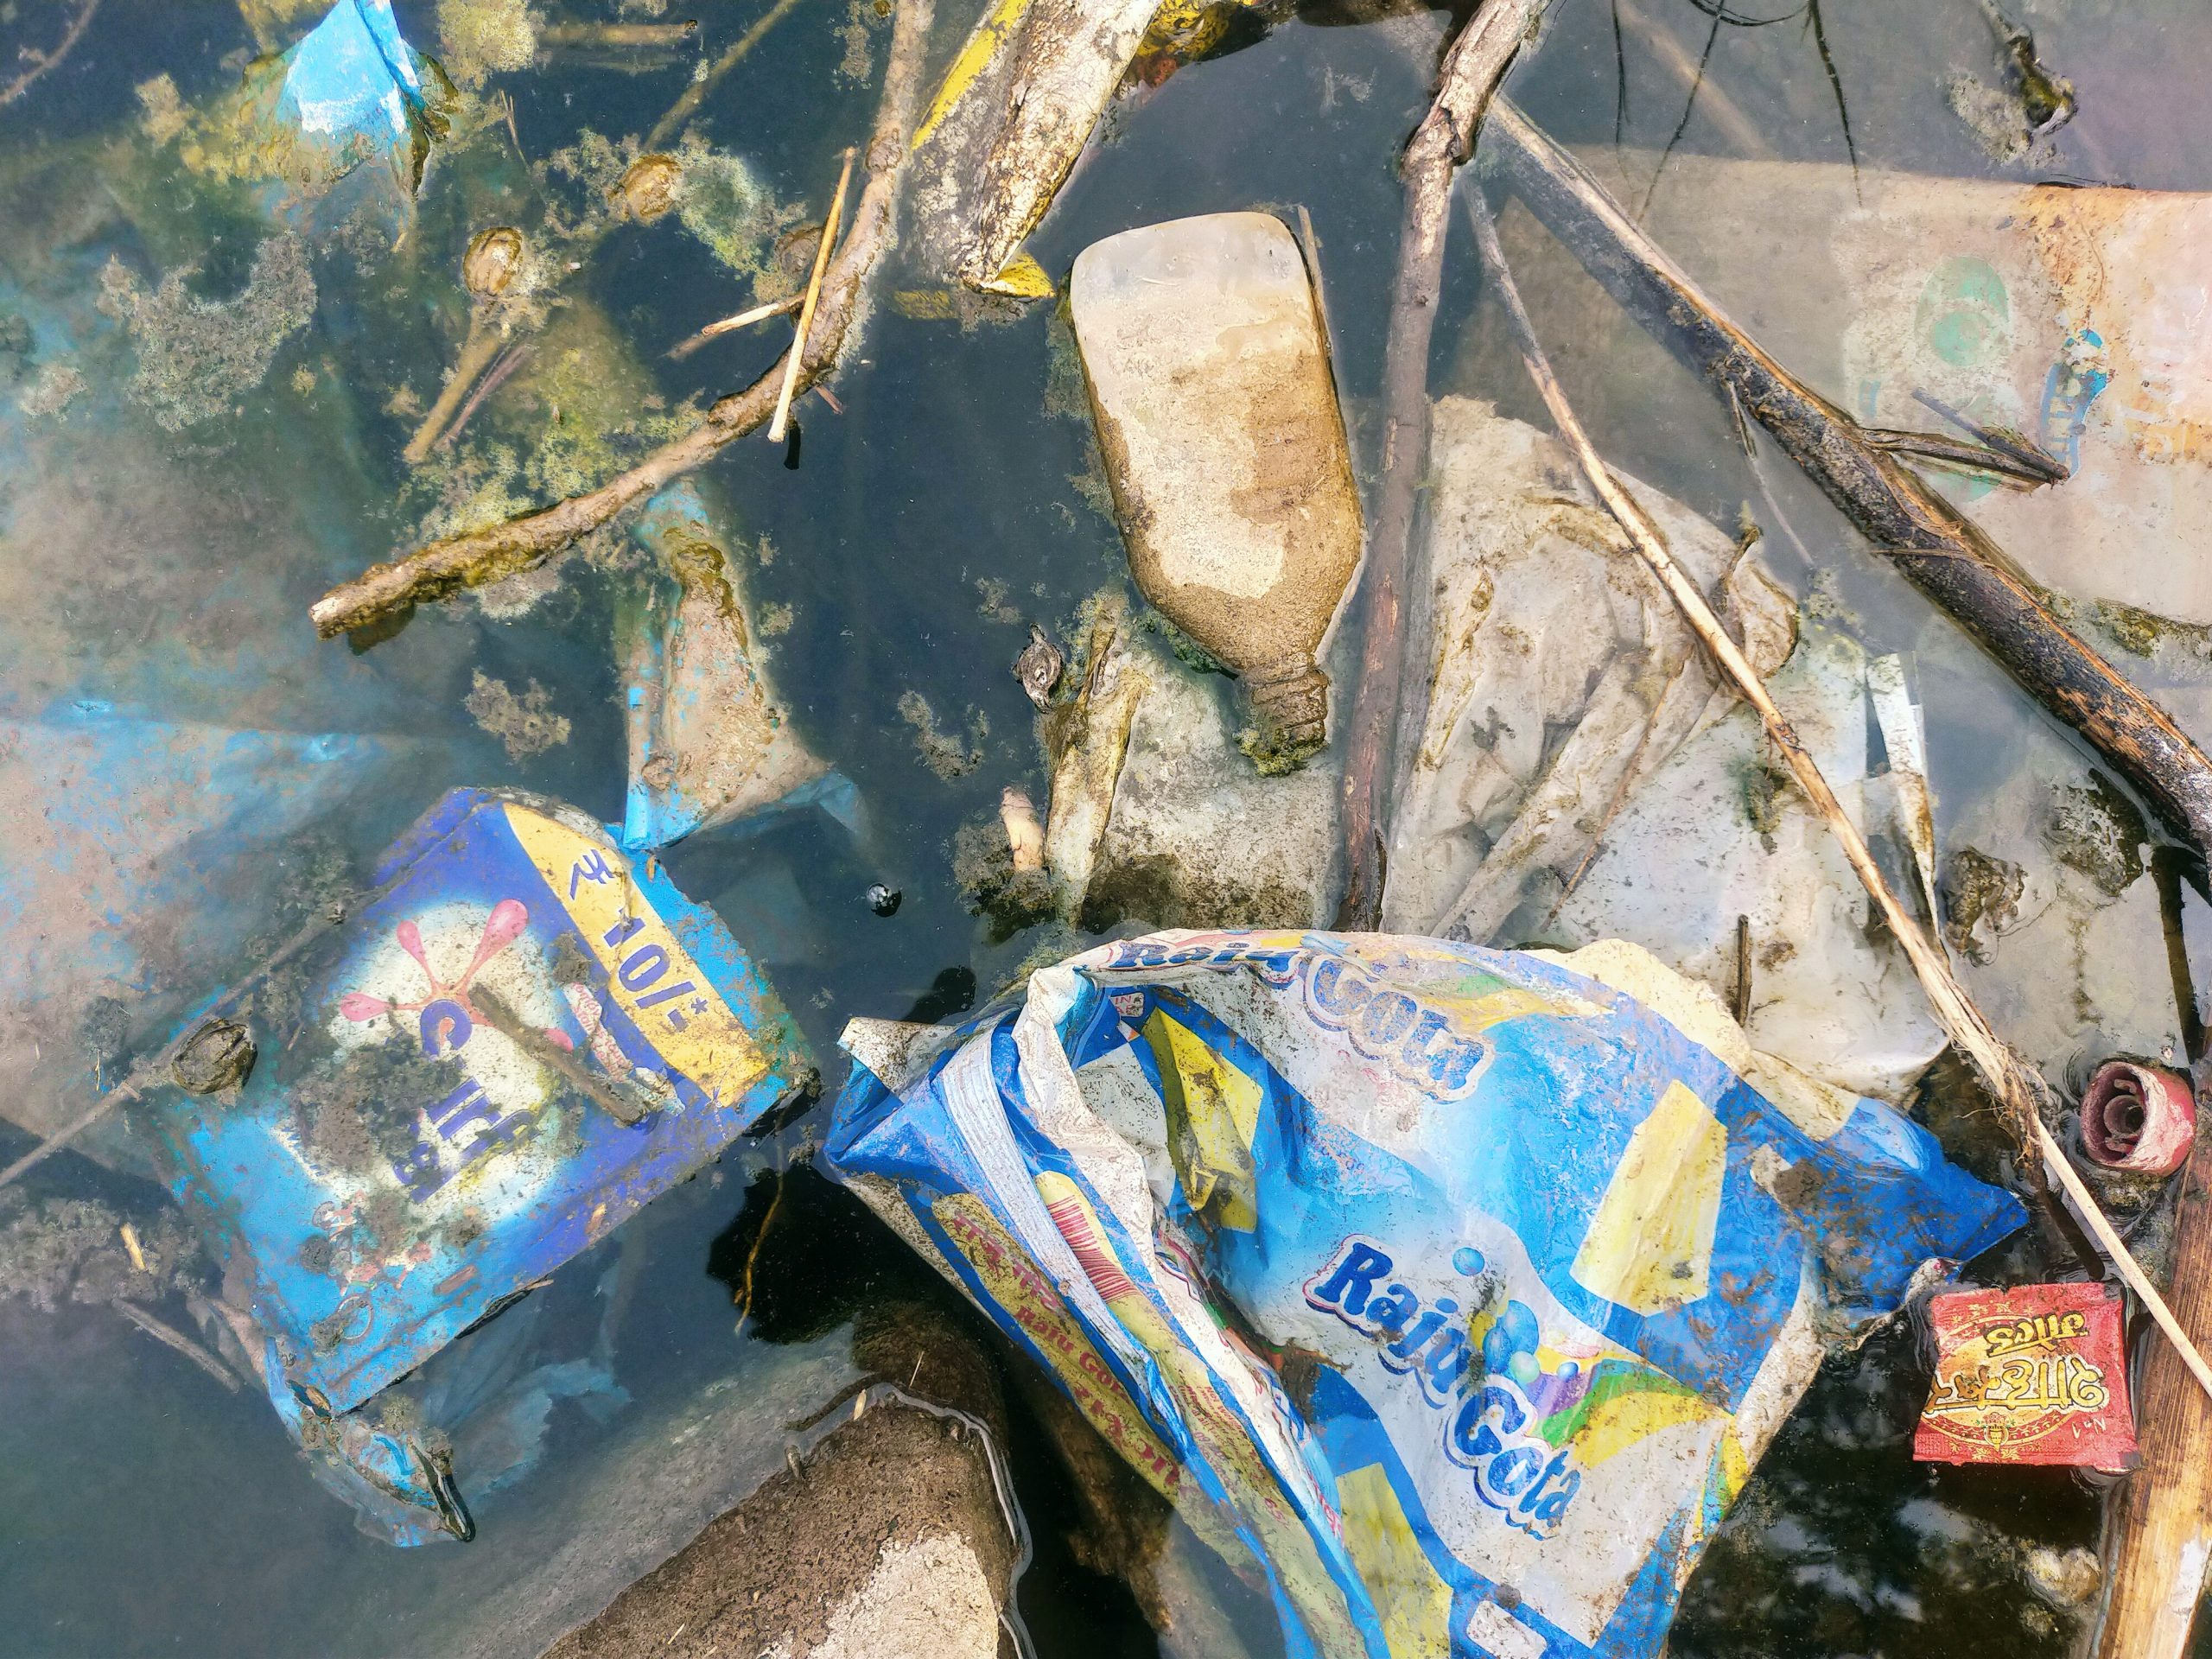 Garbage dumped in a water resource